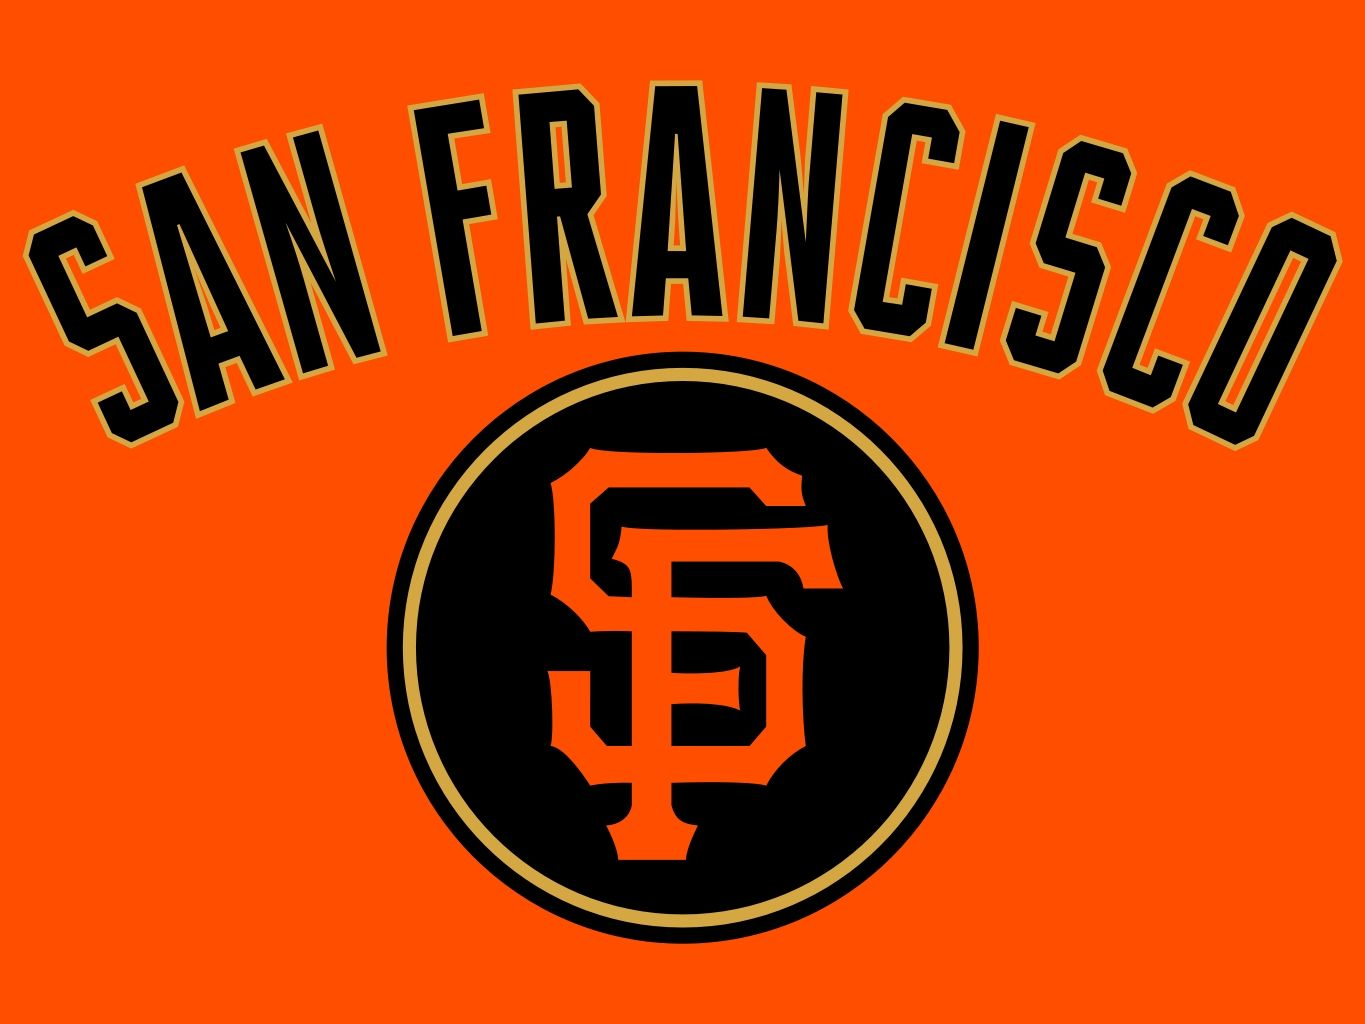 download the vector logo of the san francisco giants brand designed by sf giants in adobe adobe tank san francisco